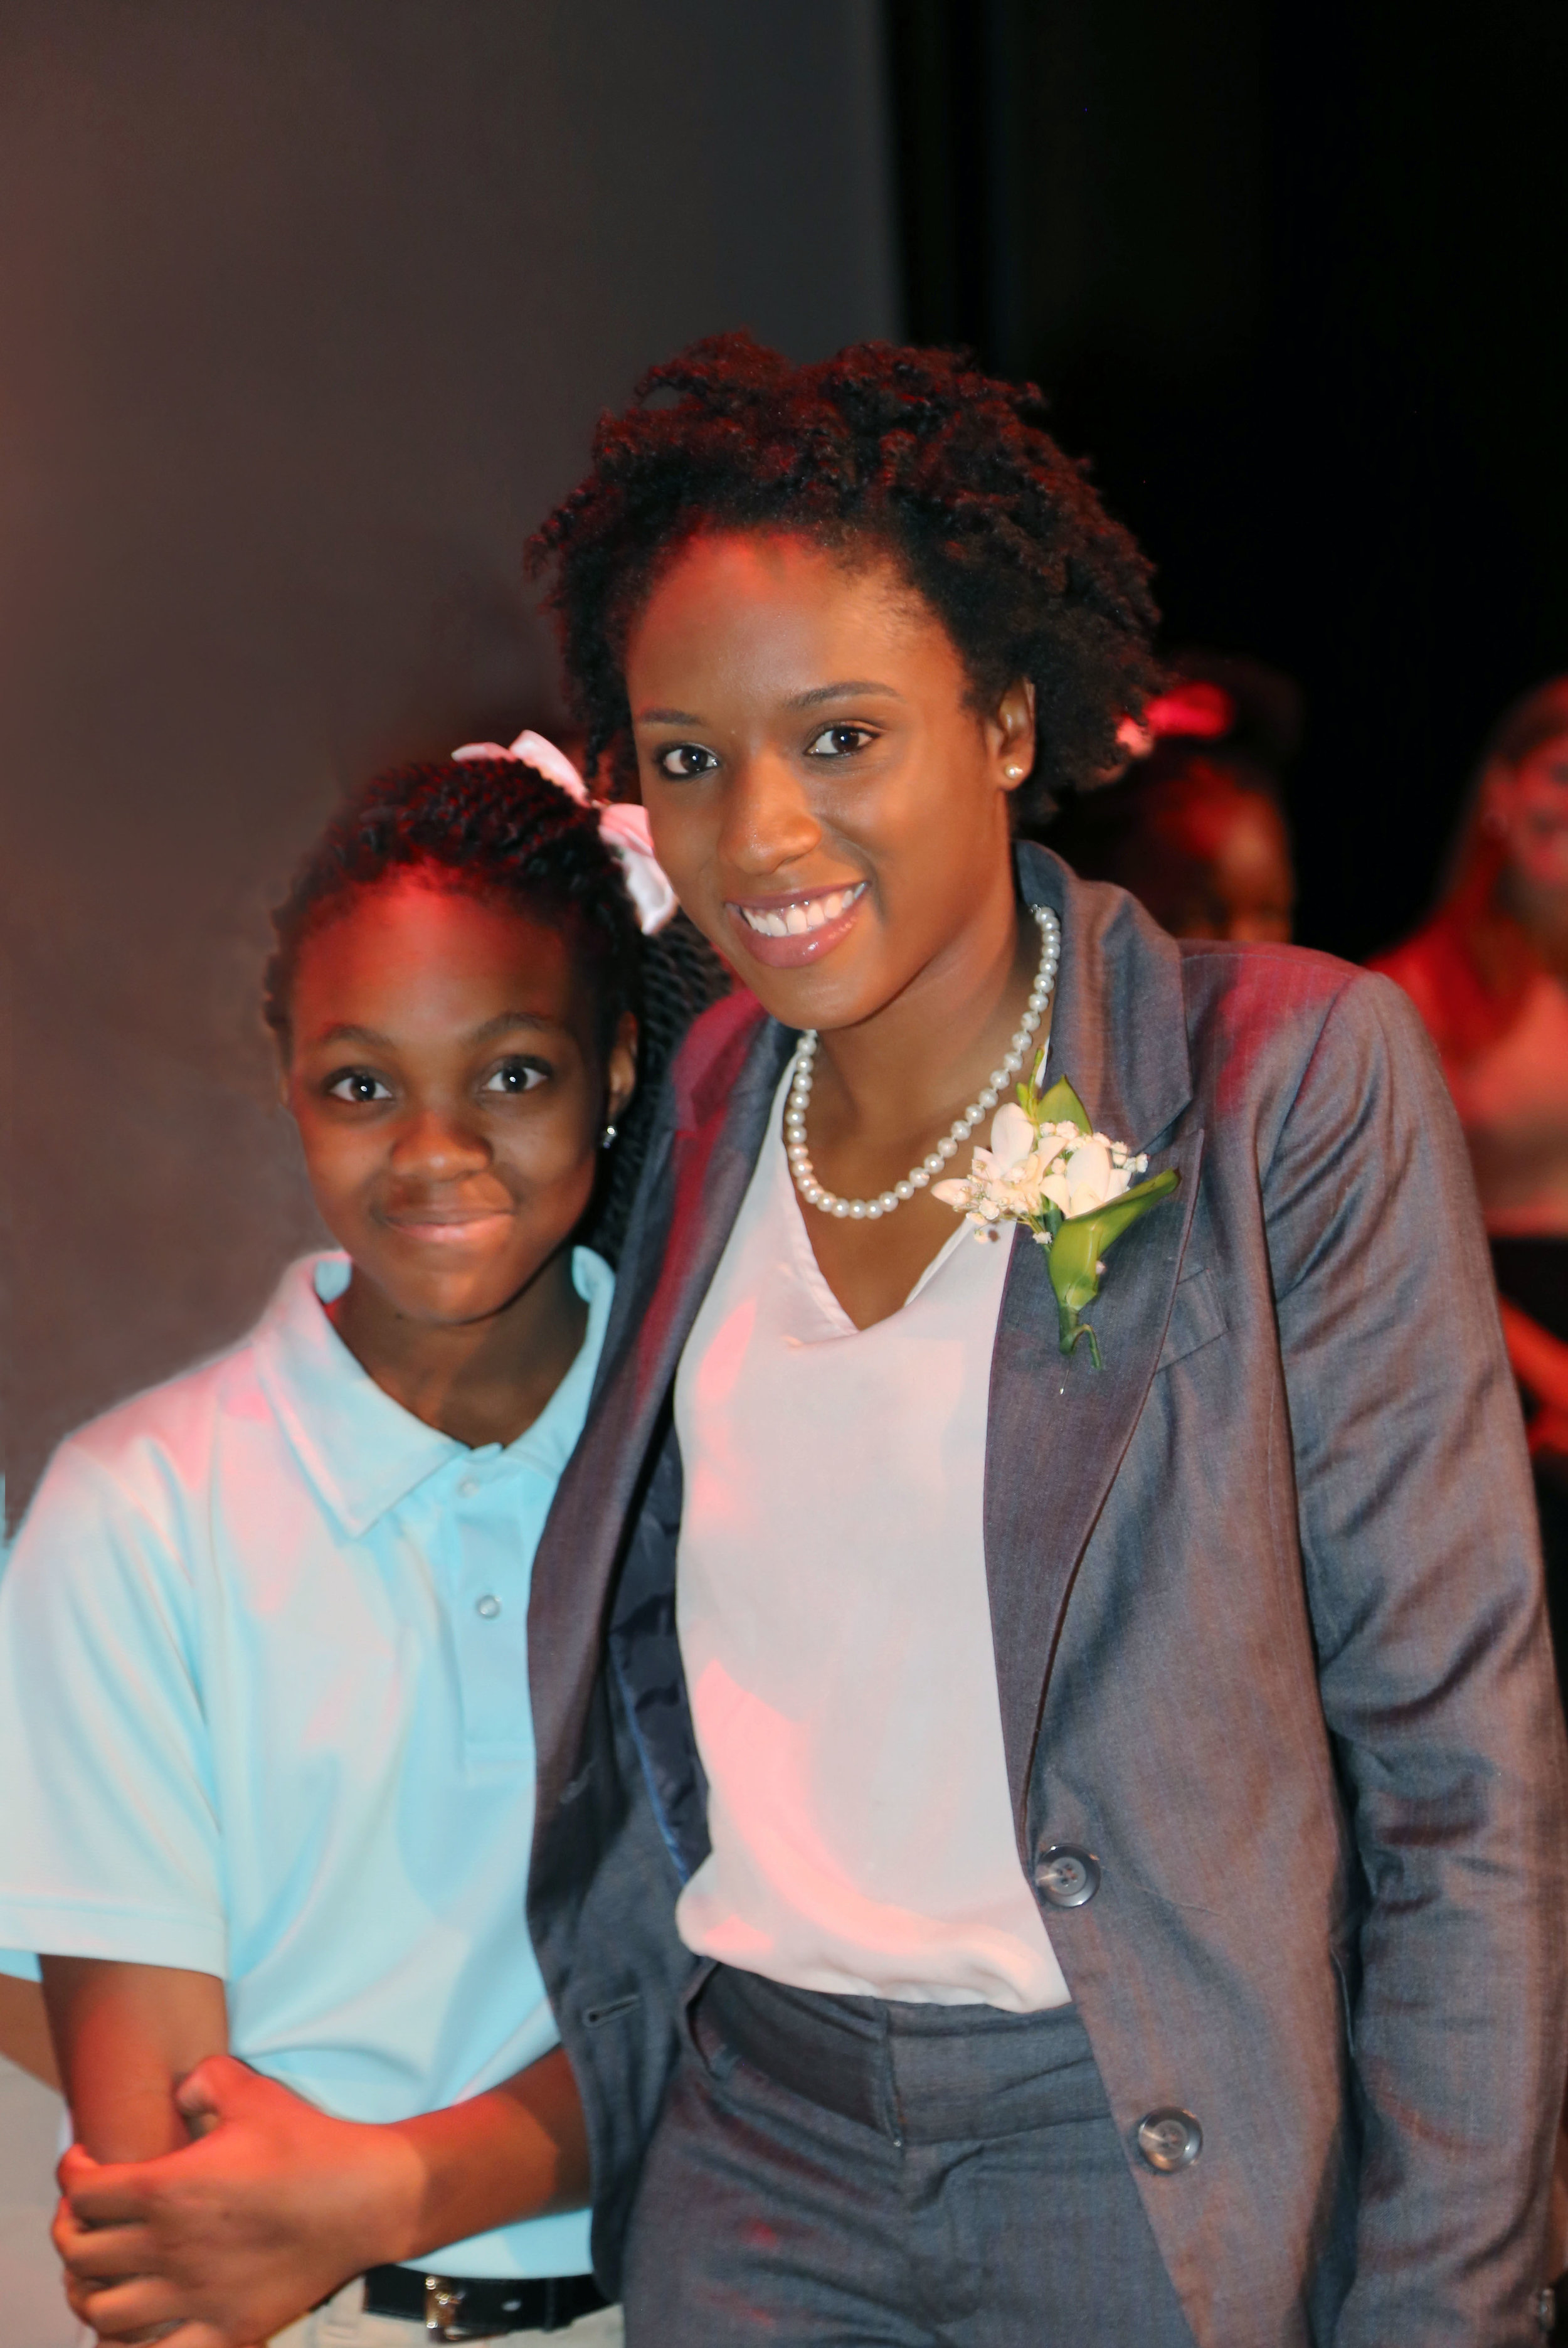 LaDonna, SEED DC '12, Florida A&M University '16) pins SEED Miami sixth grader N'stari during her Dream Ceremony.